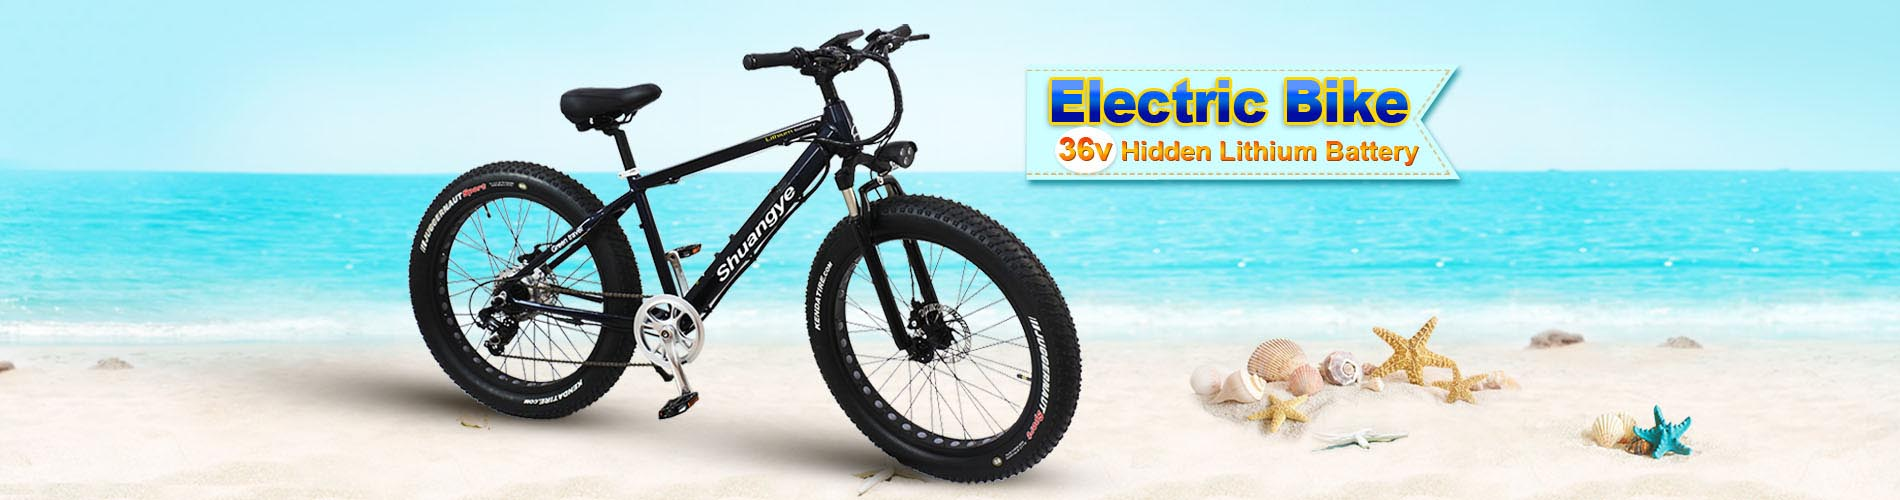 zhsydz CE marking  safe e-bicycles